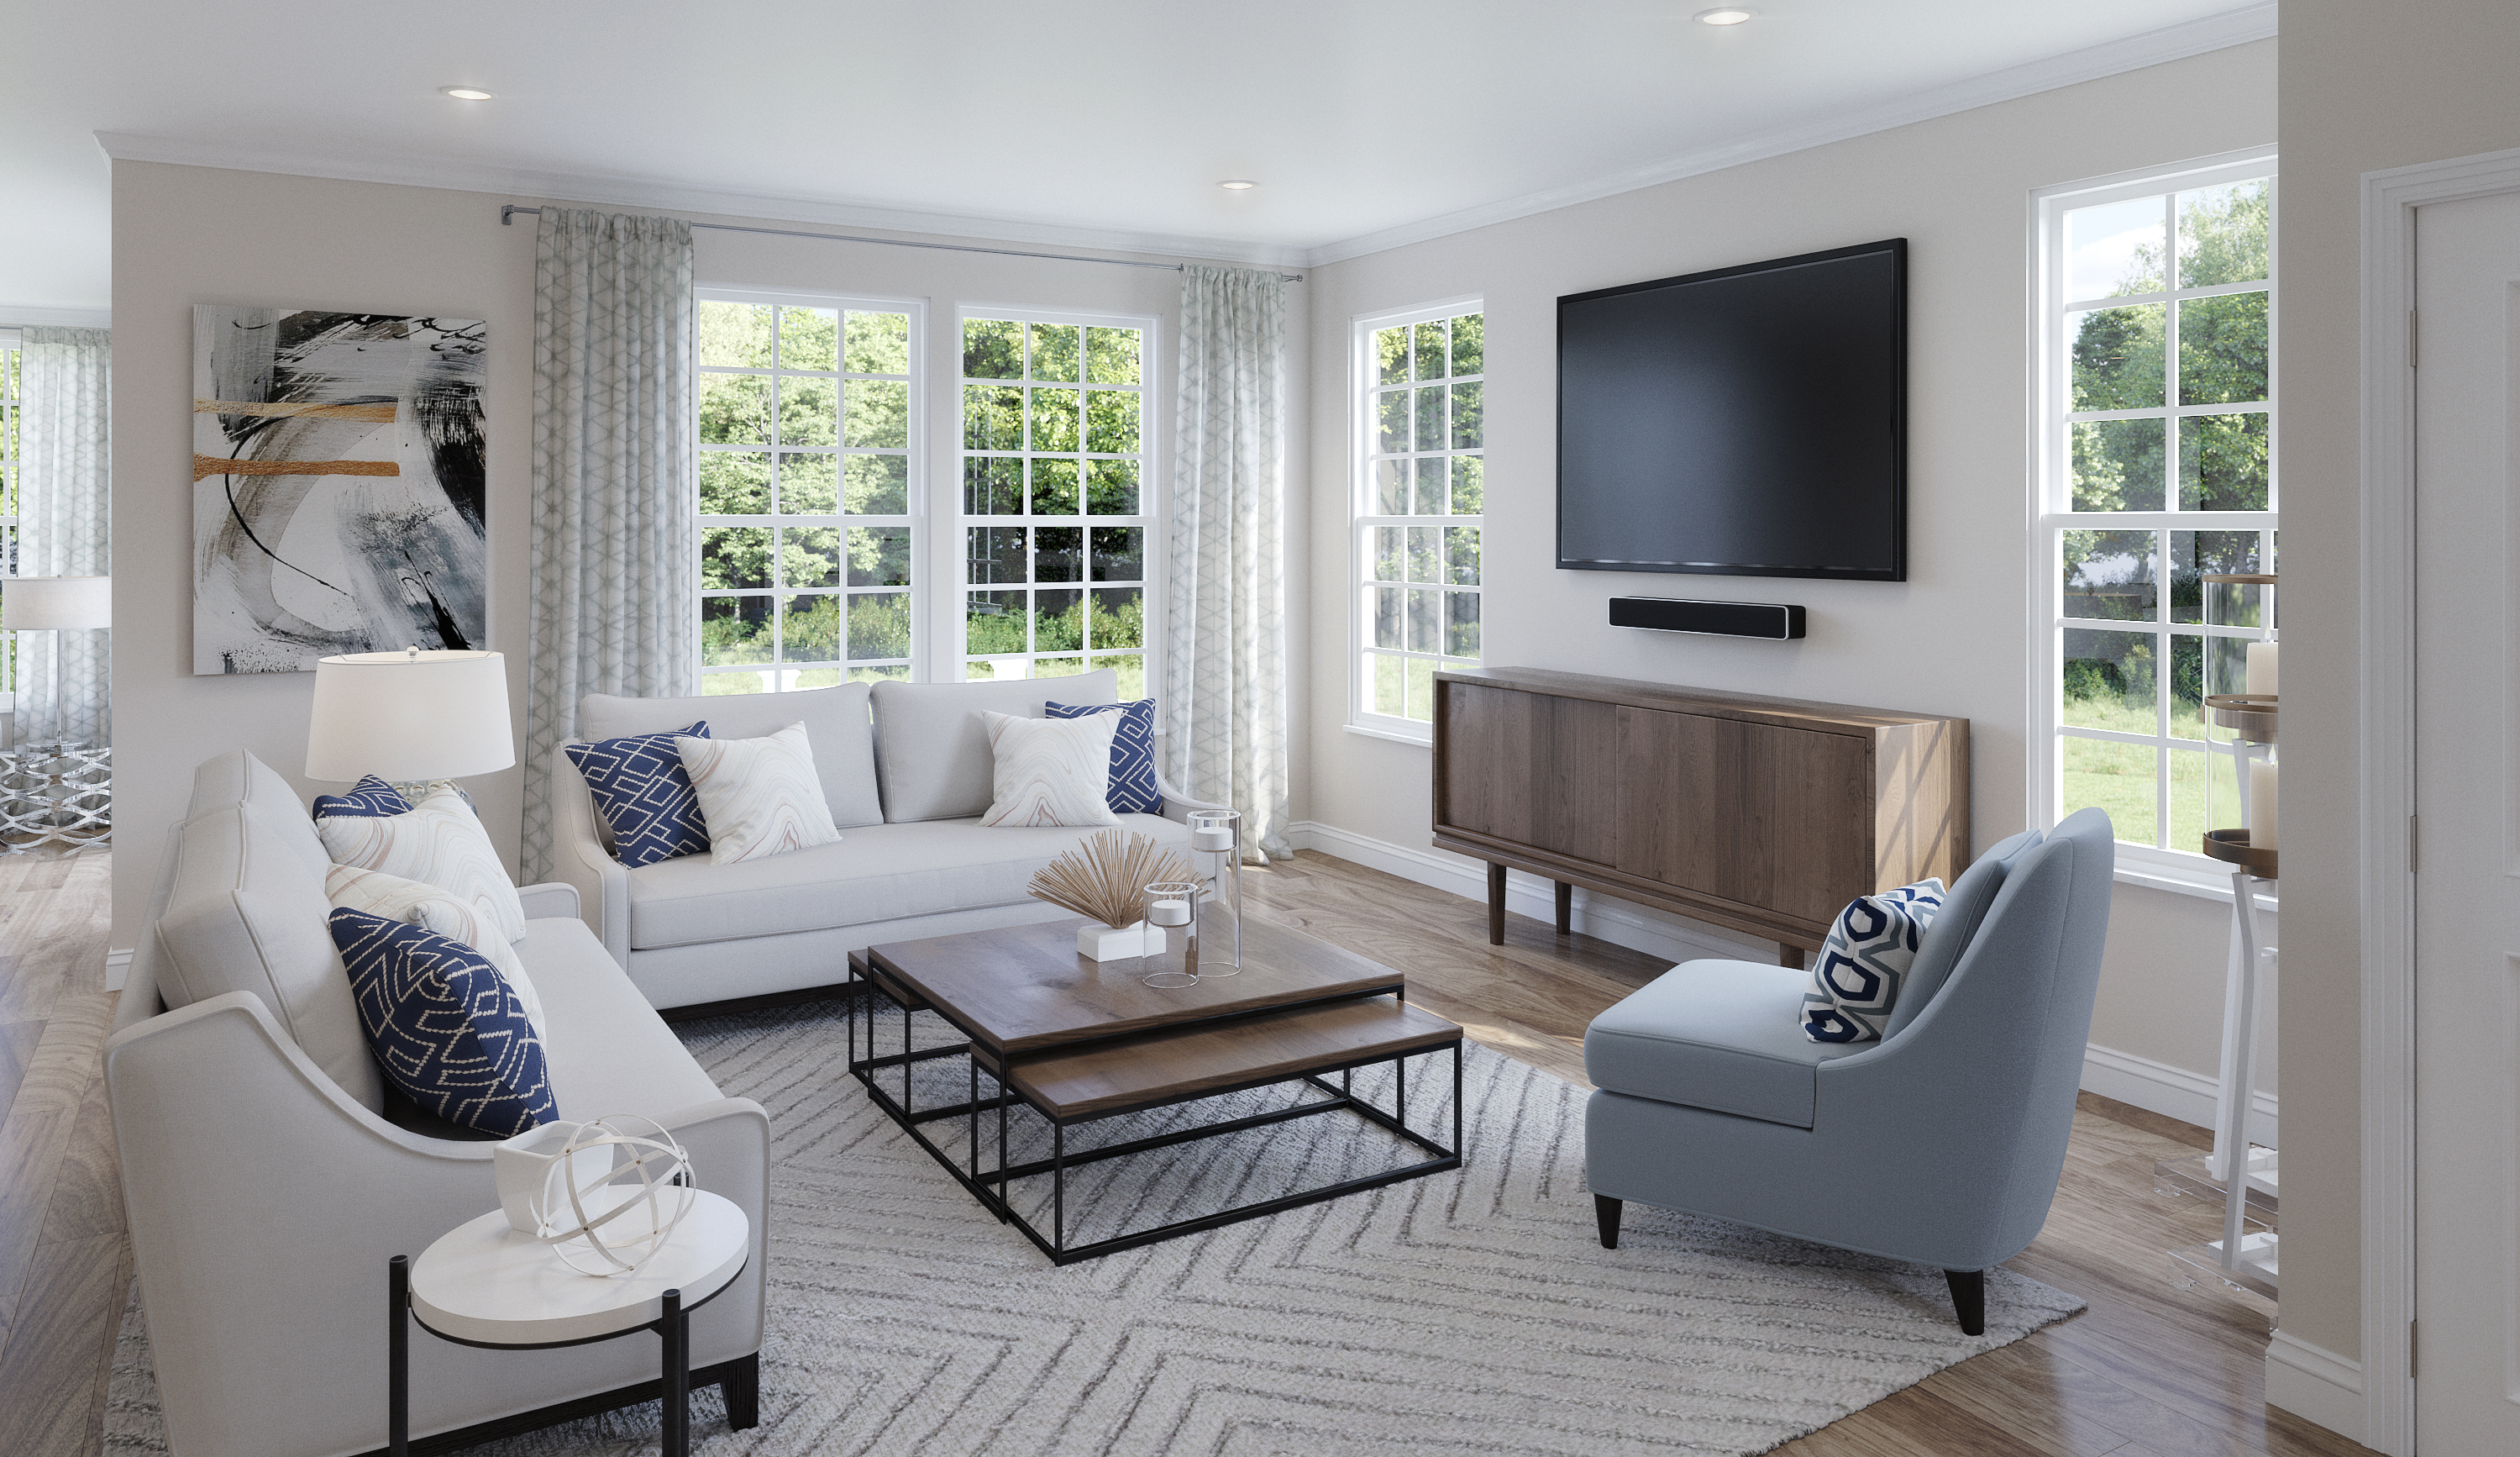 105308_Blenheim_Homes_Master_Plans_Westhampton_Great Room